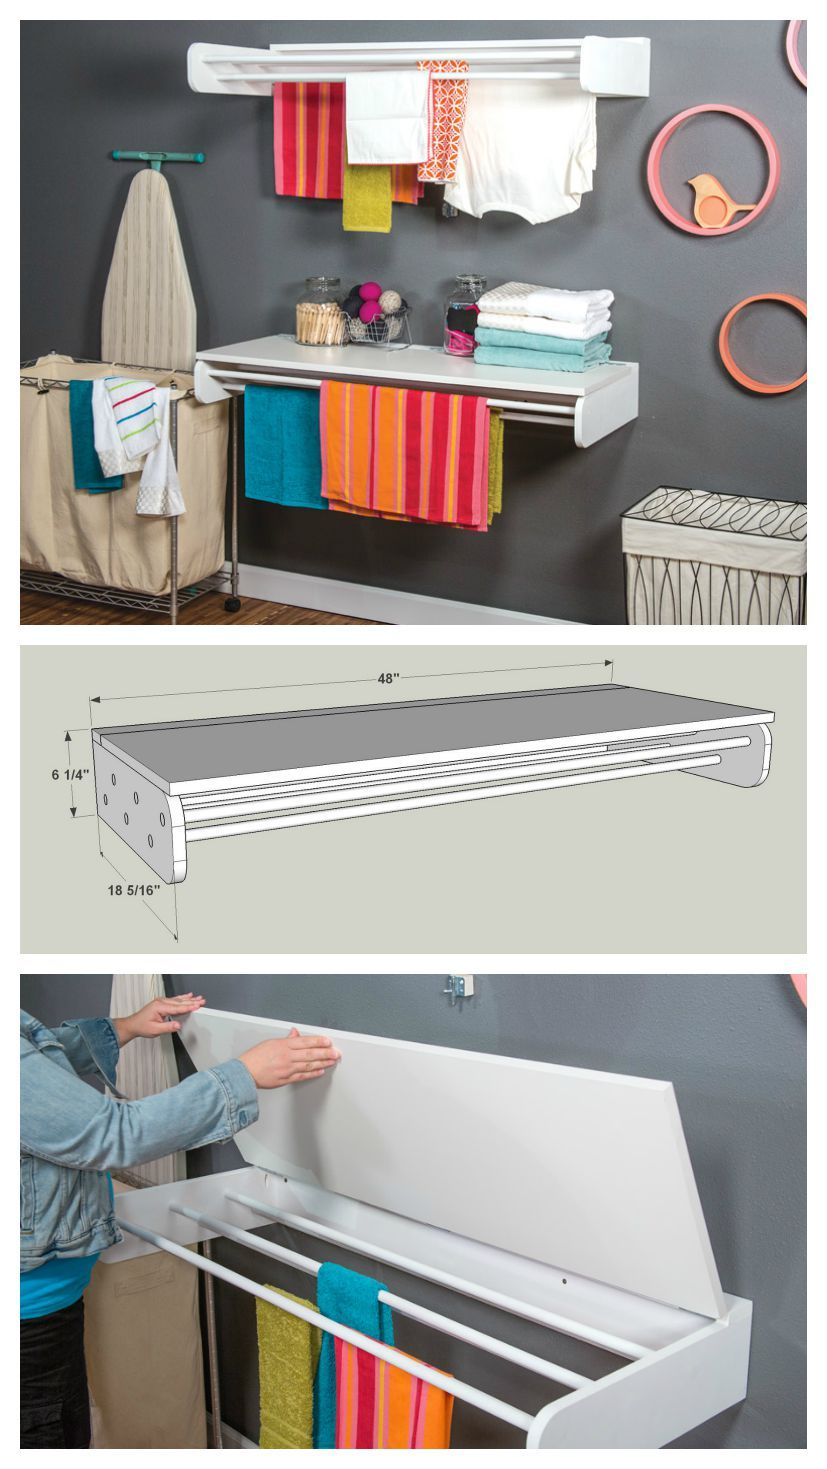 Pin by ivana bastos on carolina pinterest laundry laundry